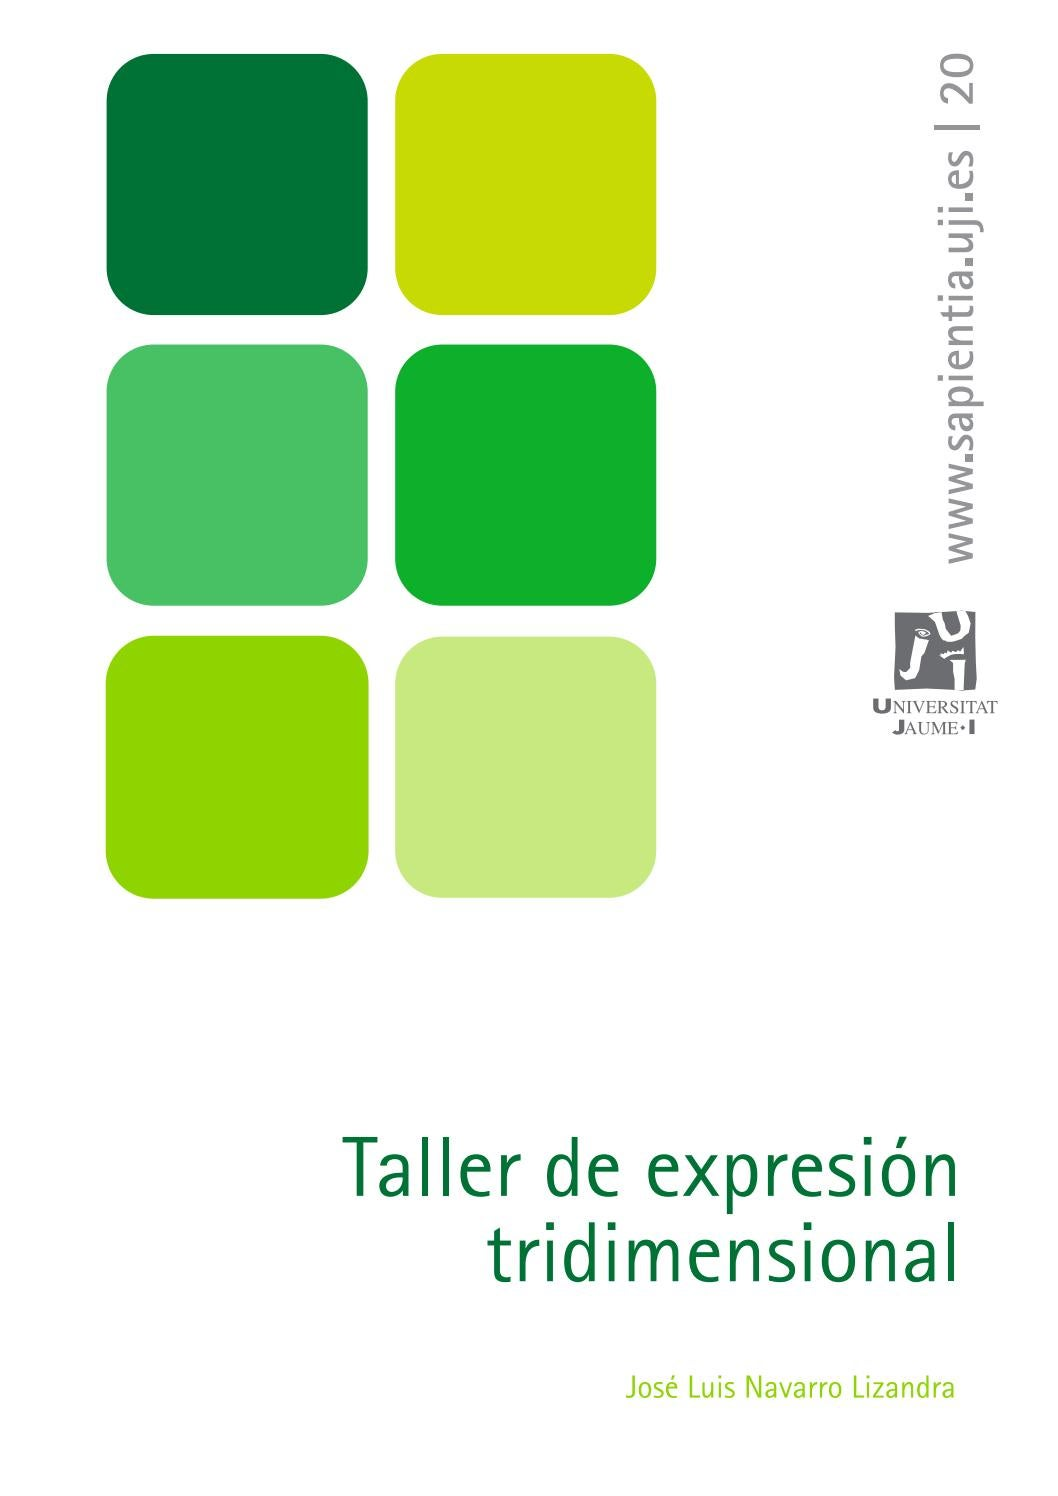 Taller de expresion tridimensional by Jhon Velasco - issuu